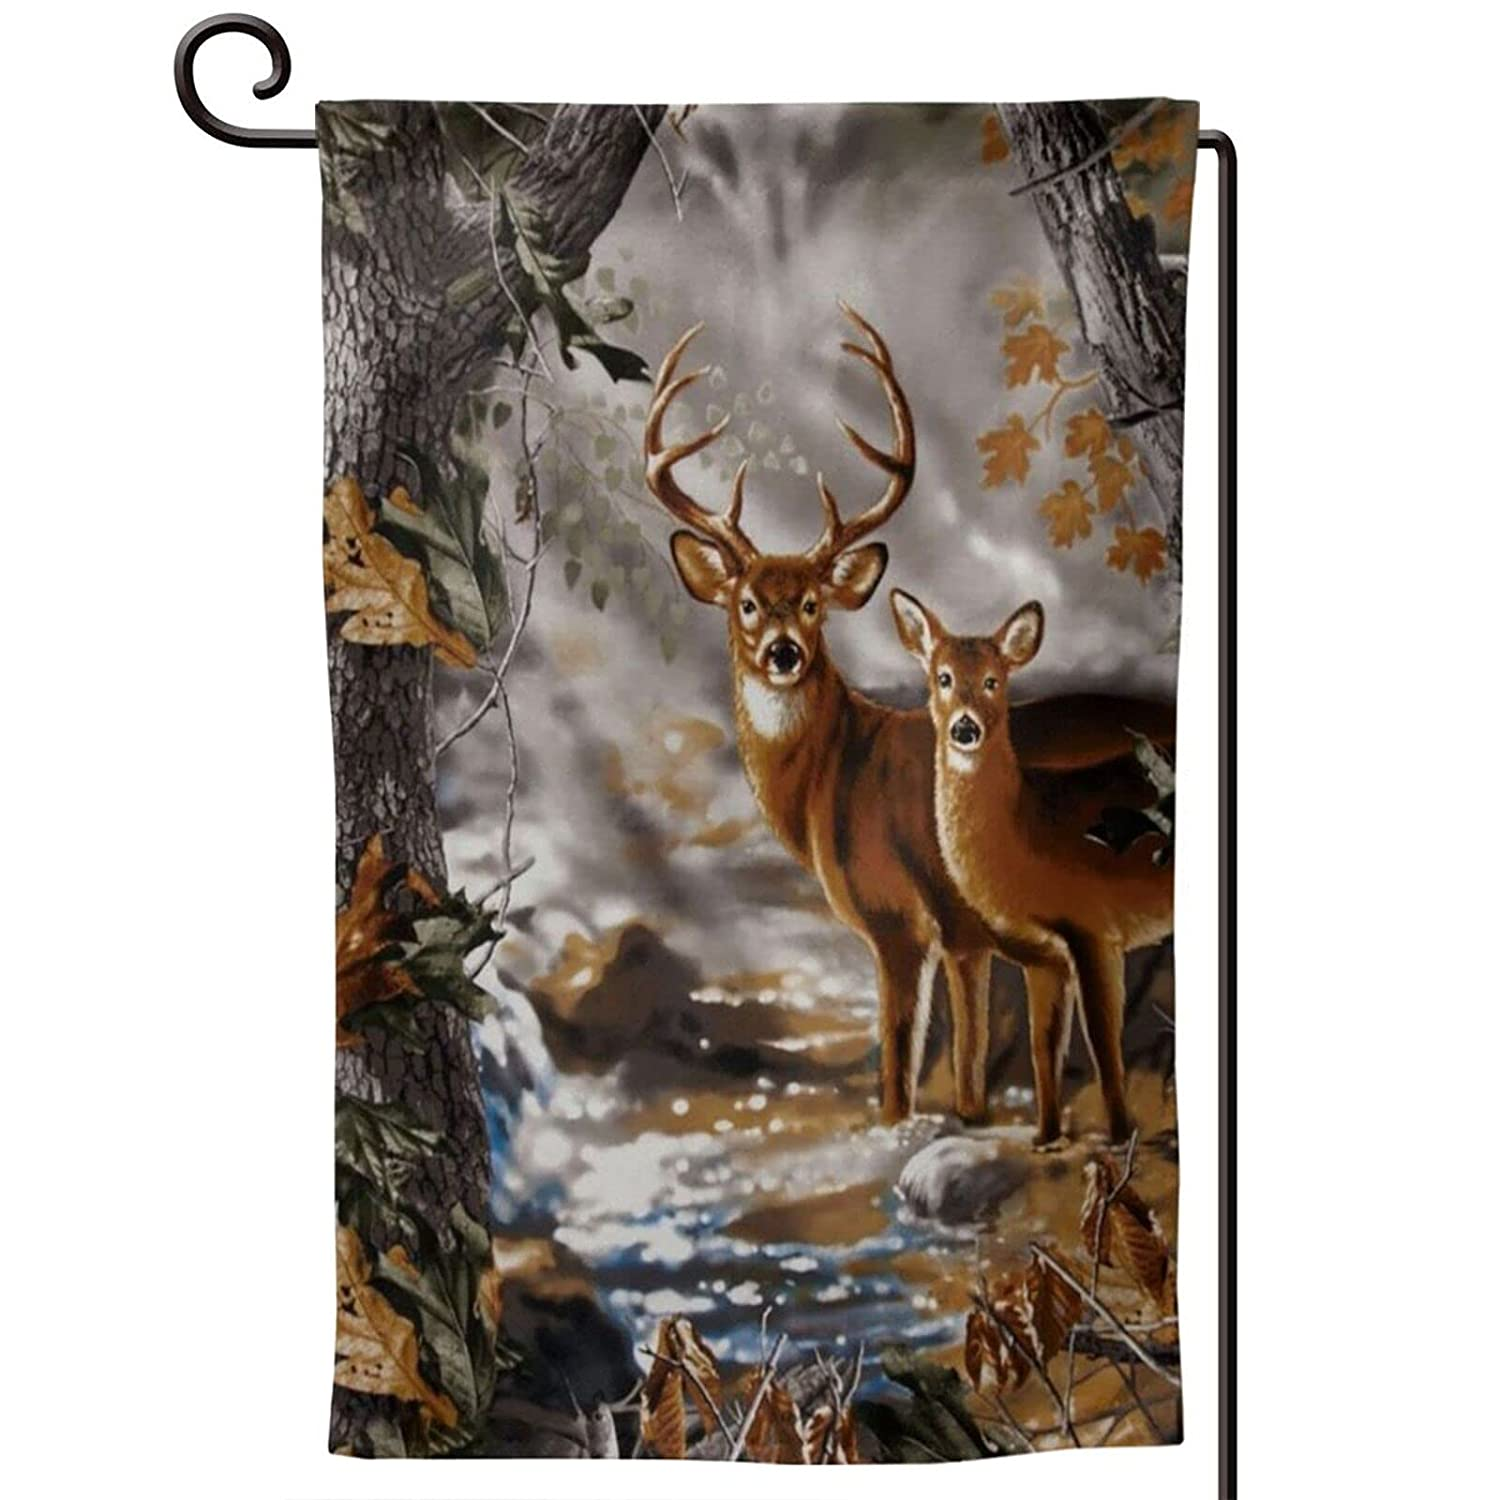 Tree Camouflage Deer Garden Flags 12x18 Double Sided Spring Summer Outdoor Interior Decoration Banner